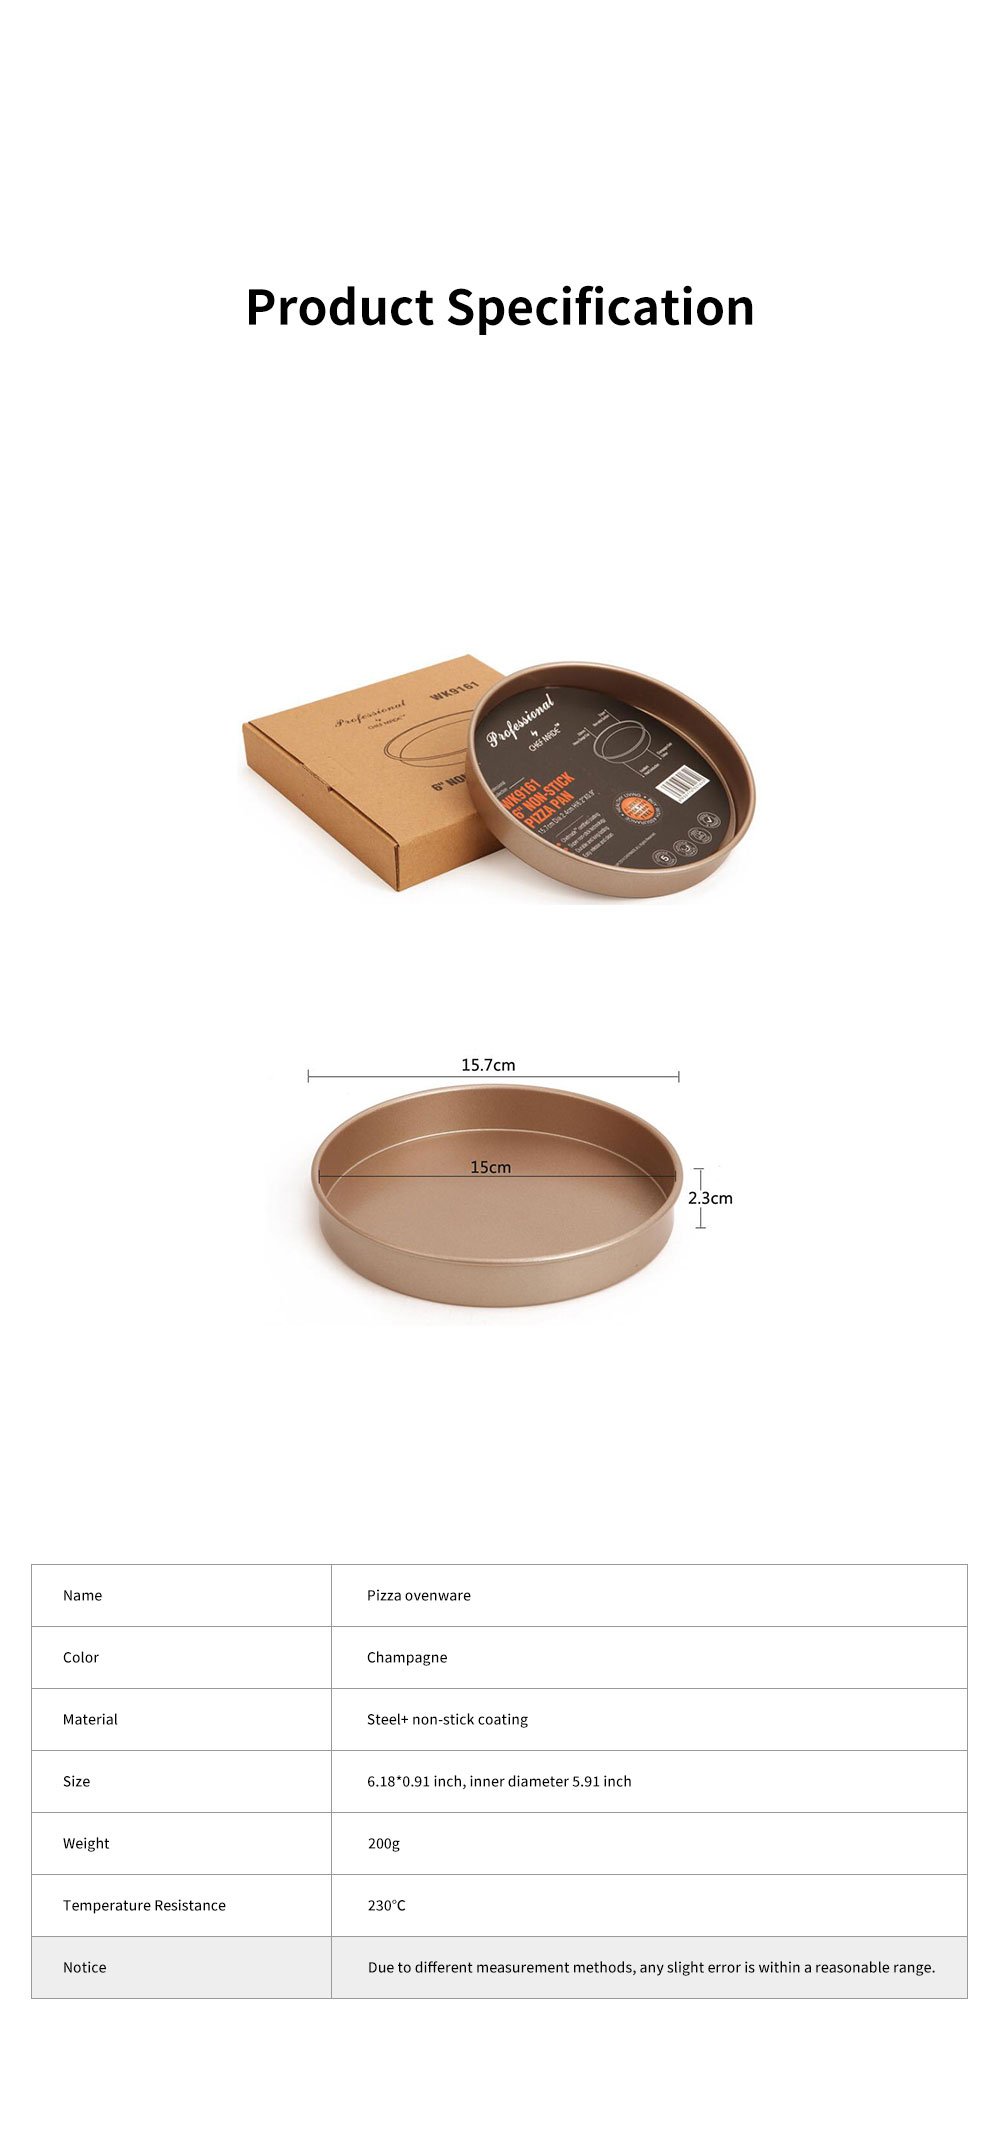 Chefmade Delicate Champagne 6-inch Non-stick Pizza Bread Baking Pan Cake Mould Ovenware Steel Bakeware Kitchen Assistant Tool 5